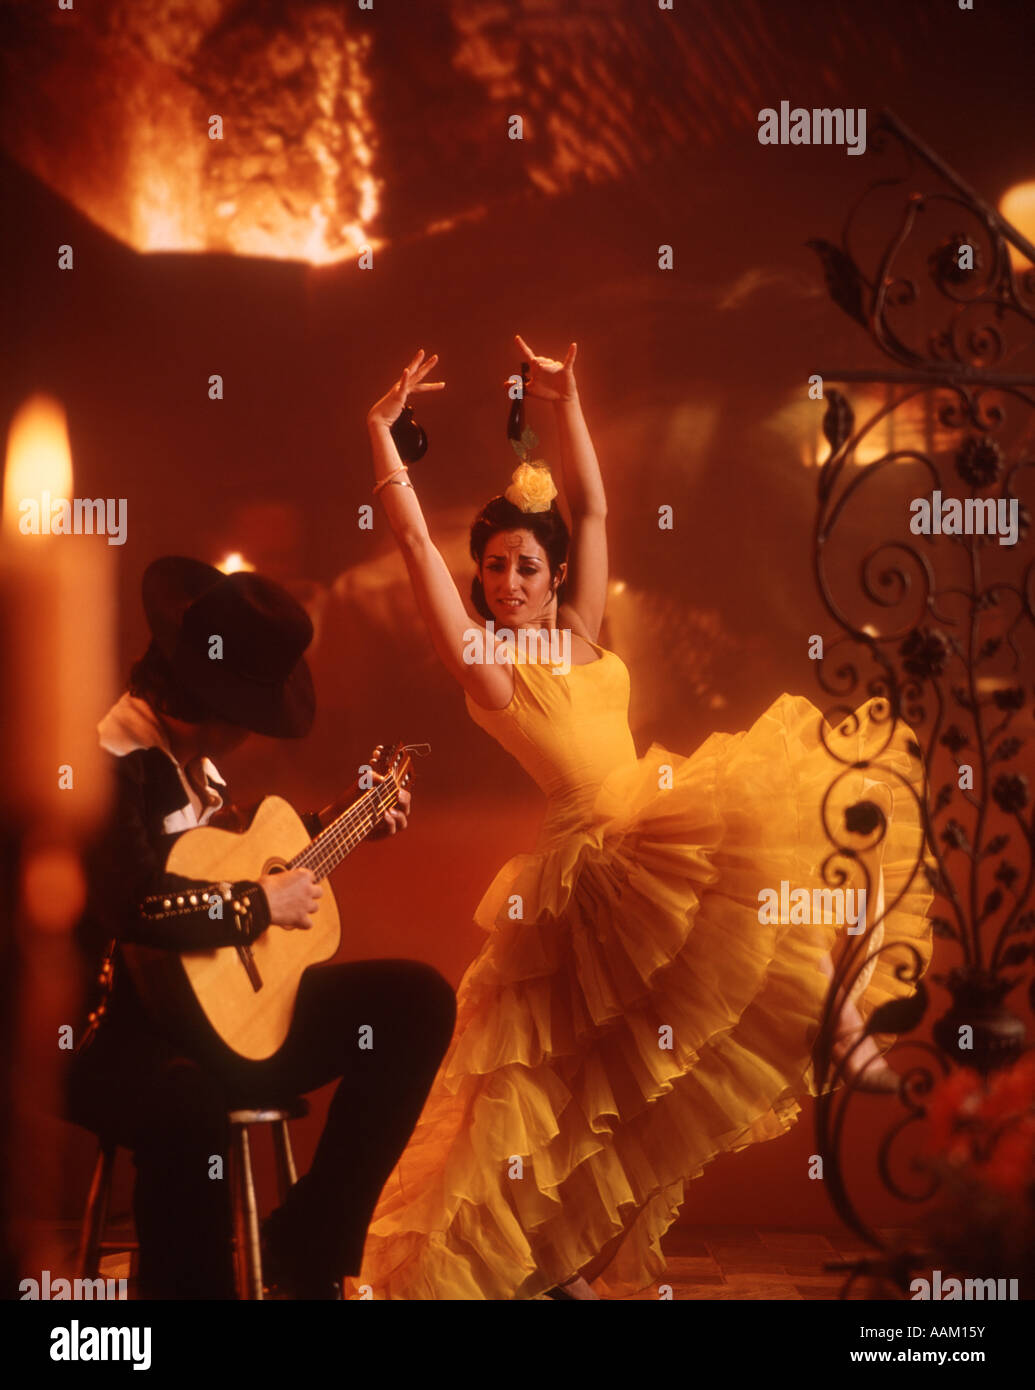 SINGLE FLAMENCO DANCER WOMAN GUITAR MAN MUSICIAN SPANISH LATIN ATTITUDE WILD FAST TOGETHER INDOOR ROMANCE MYSTERY - Stock Image